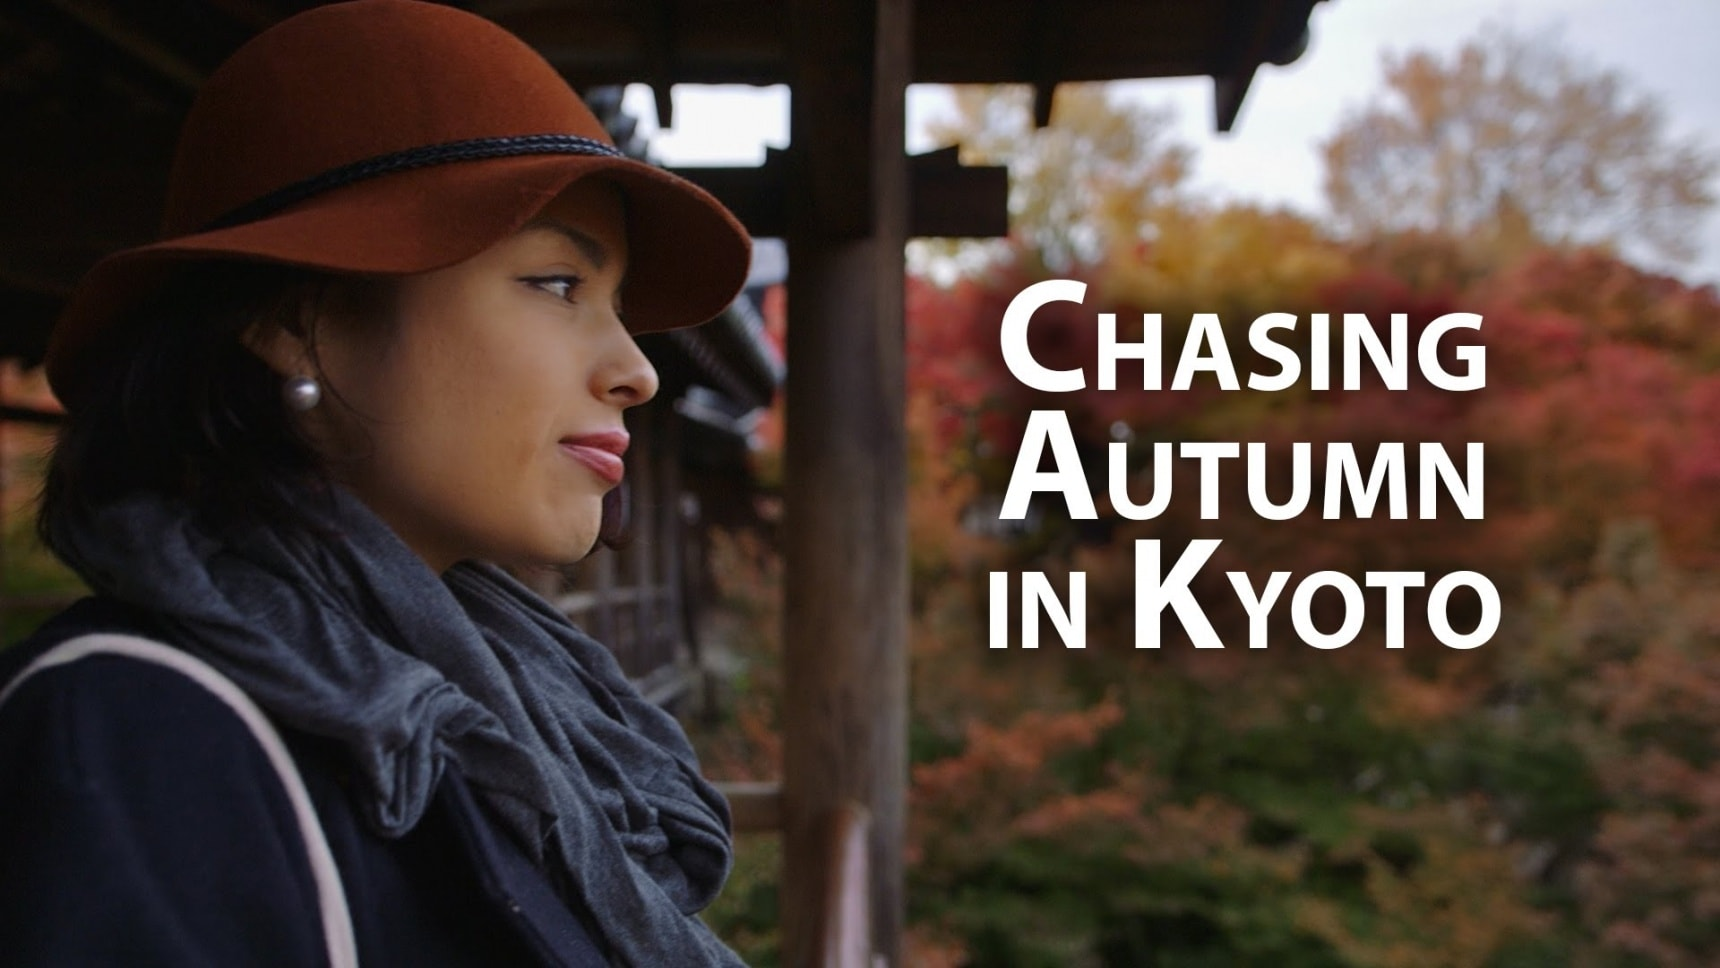 These 4 Kyoto Videos Will Make Your Heart Ache